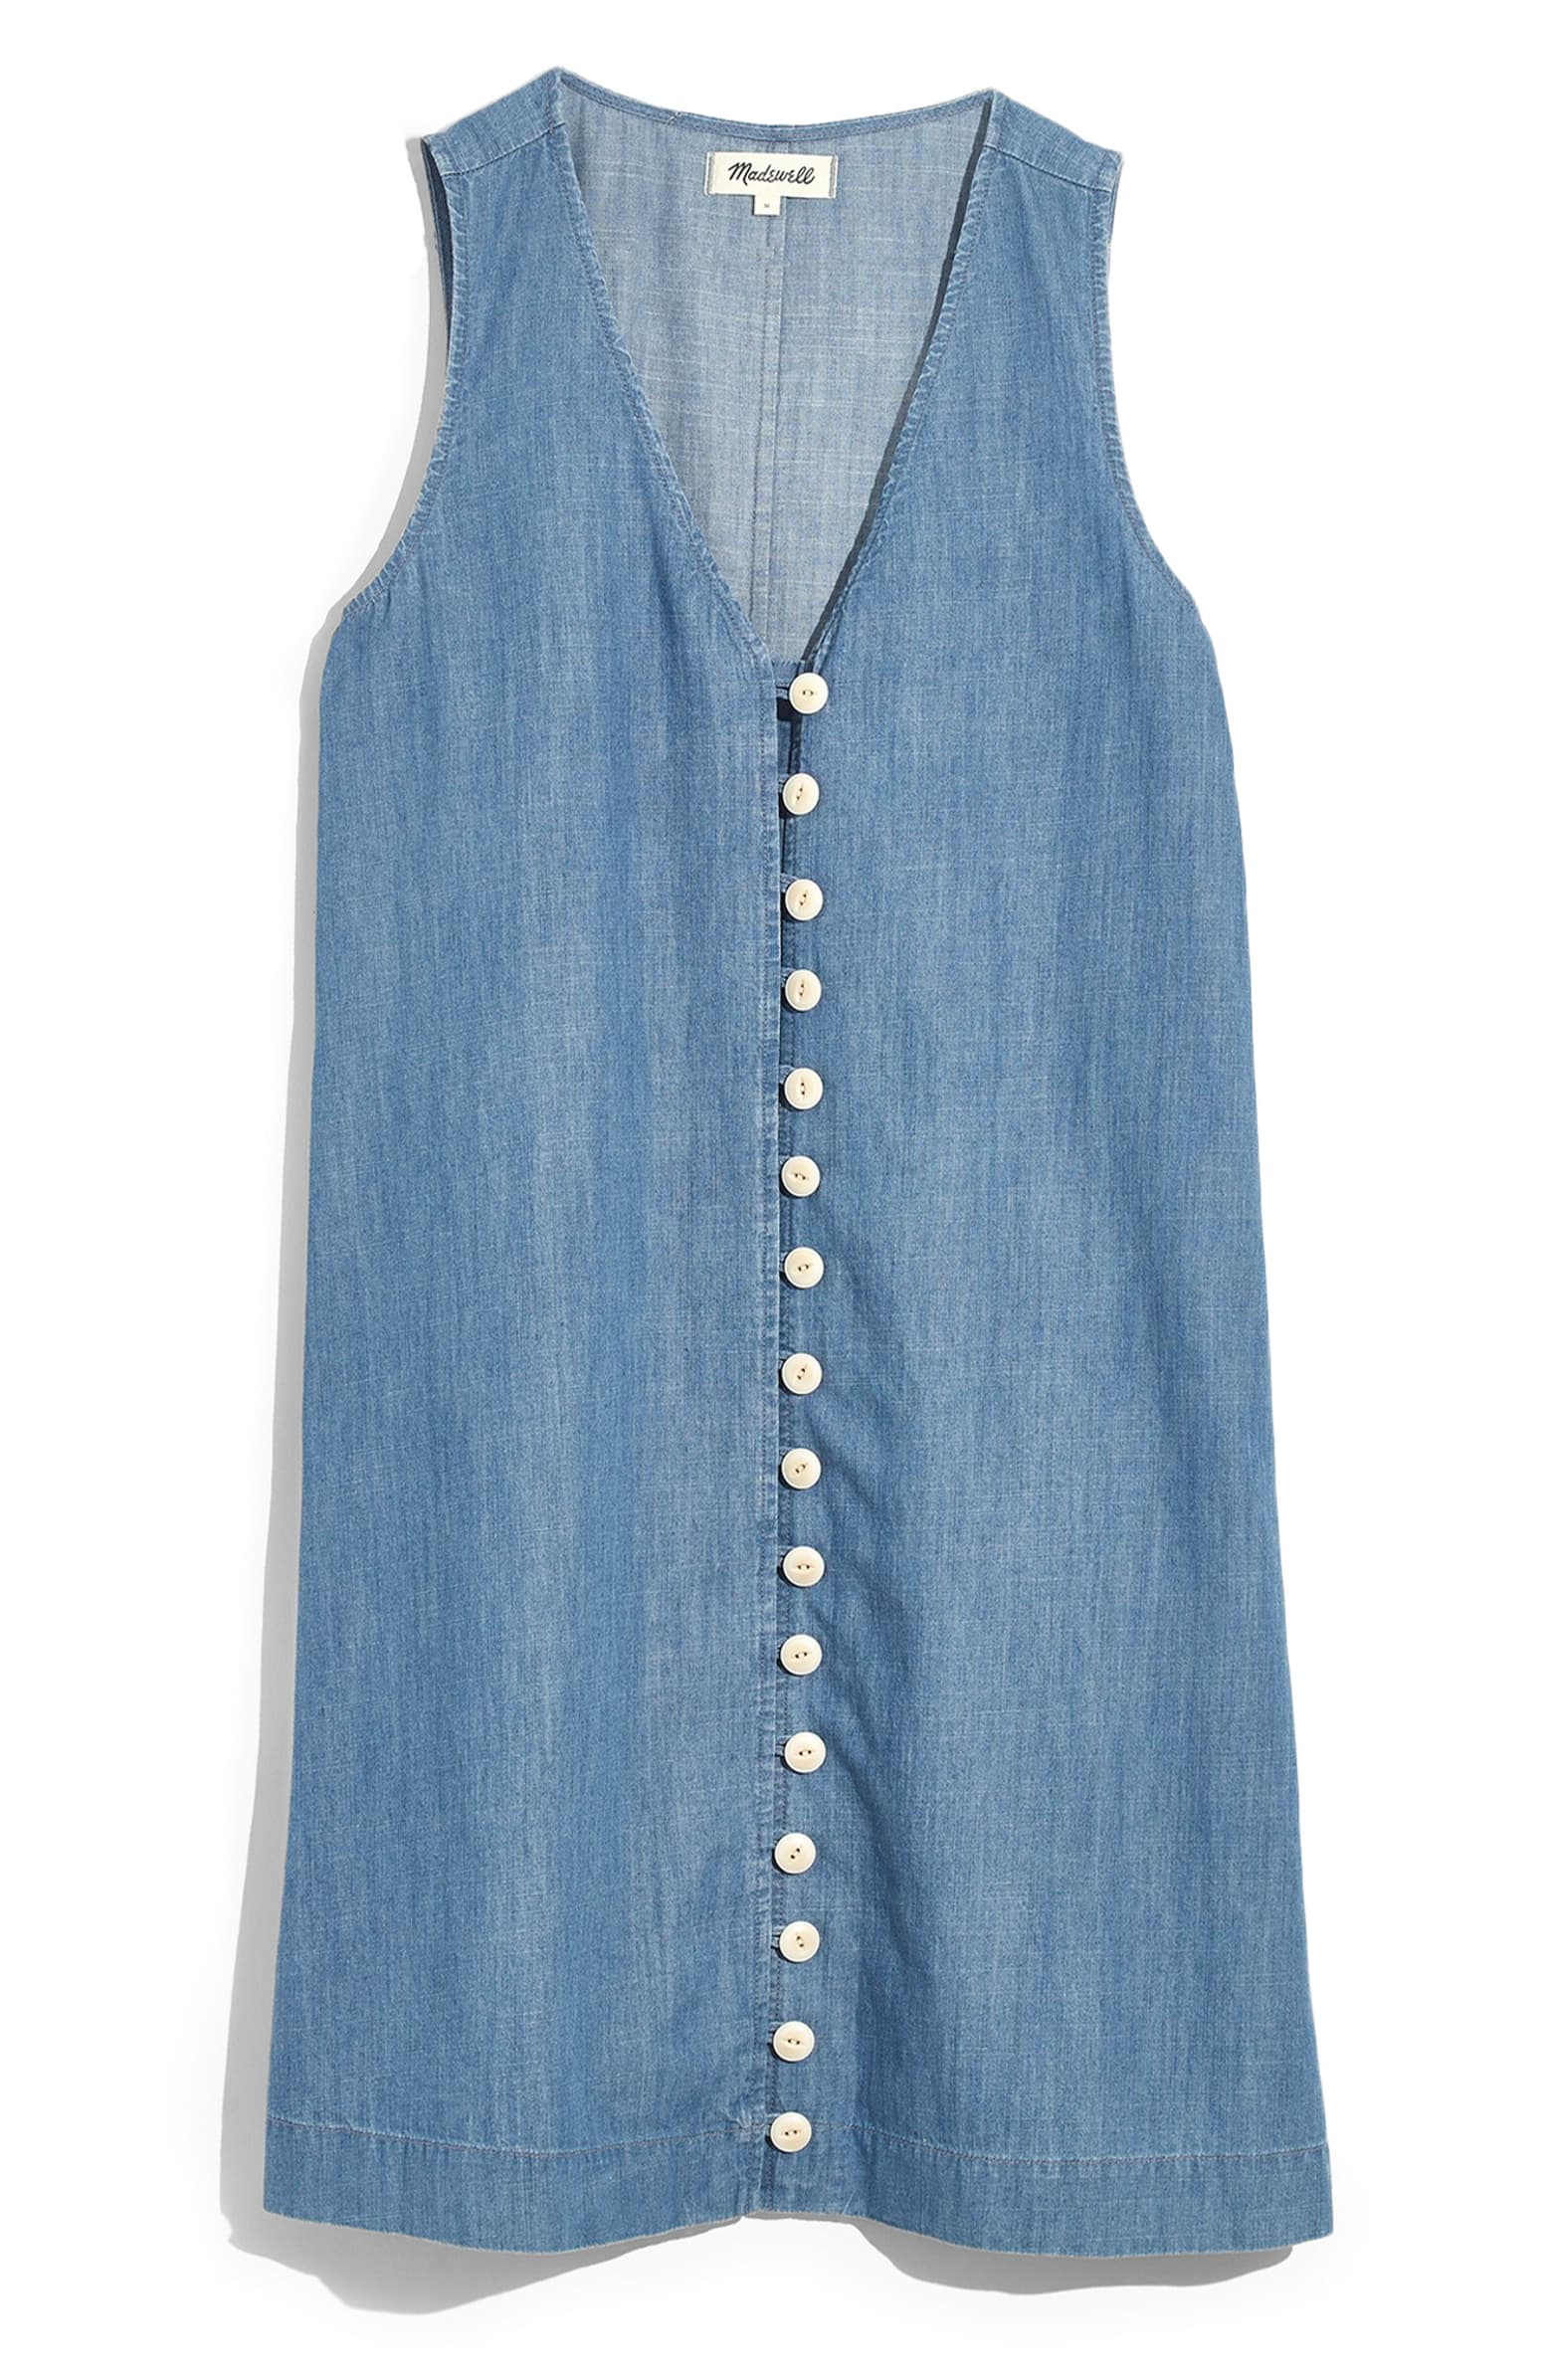 Madewell Easy Sleeveless Button Front Denim Dress